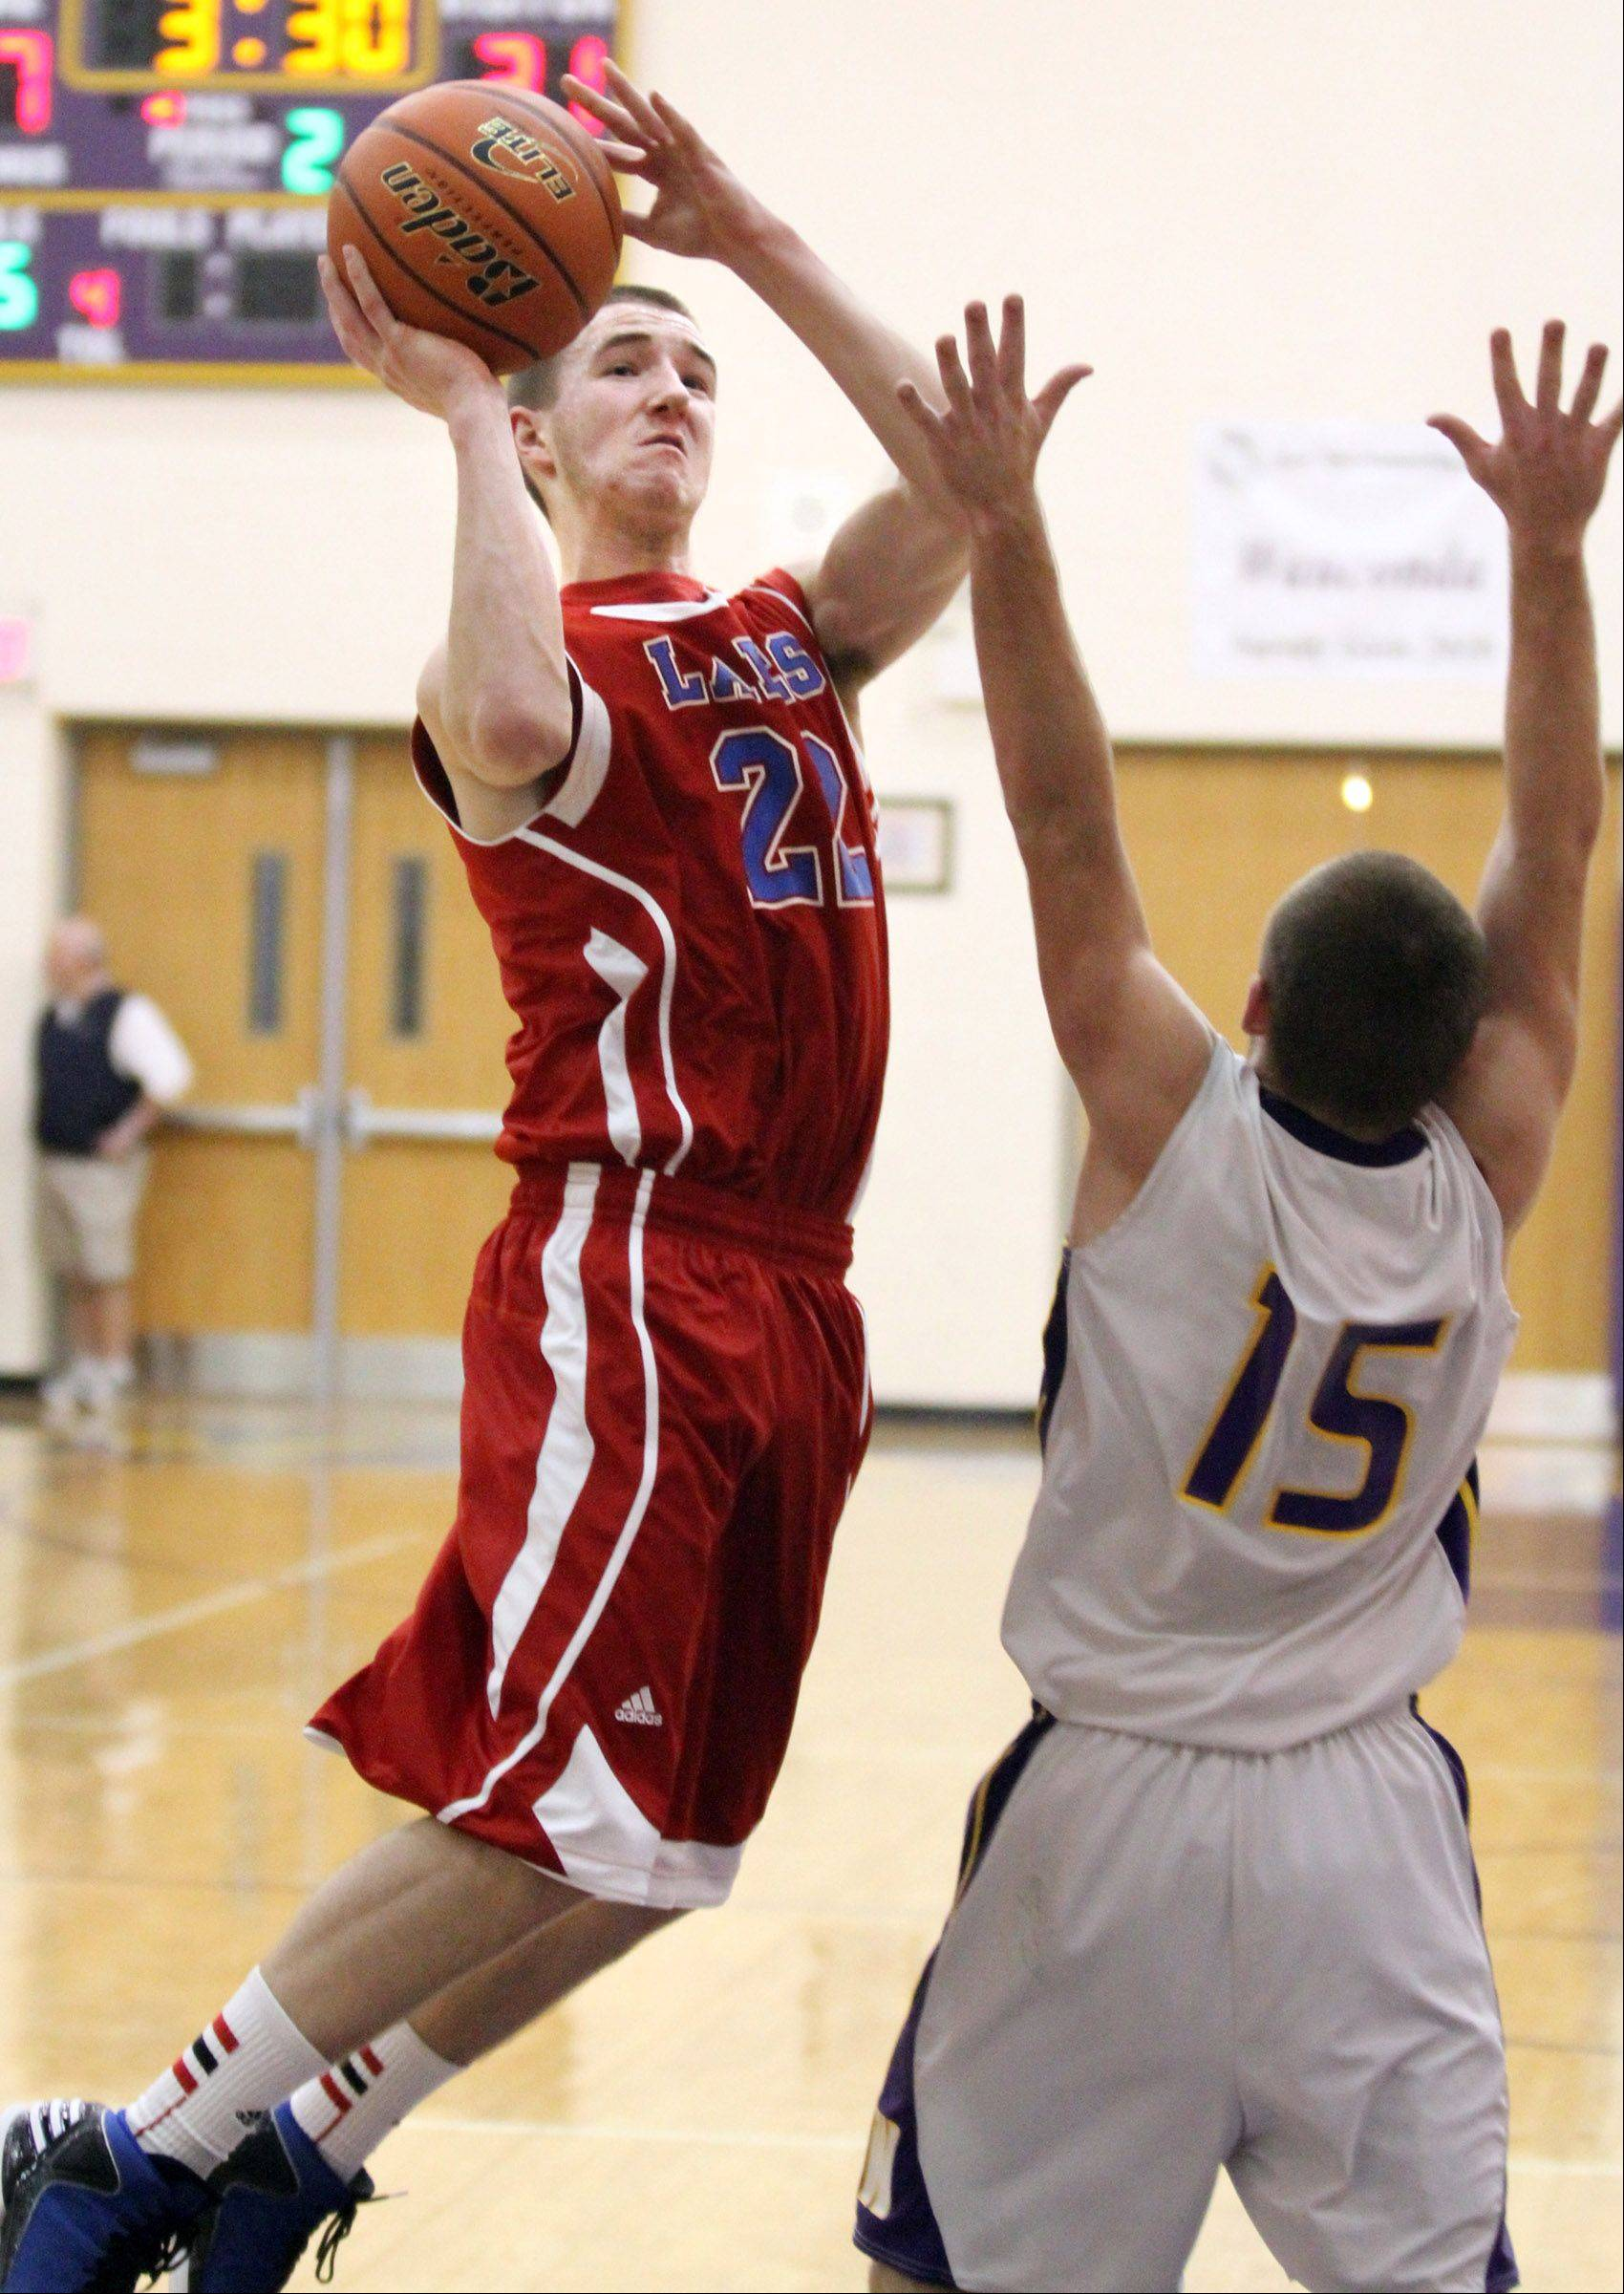 Lakes' point guard Troy Swindle shoots over Wauconda defender Keith Blomberg.